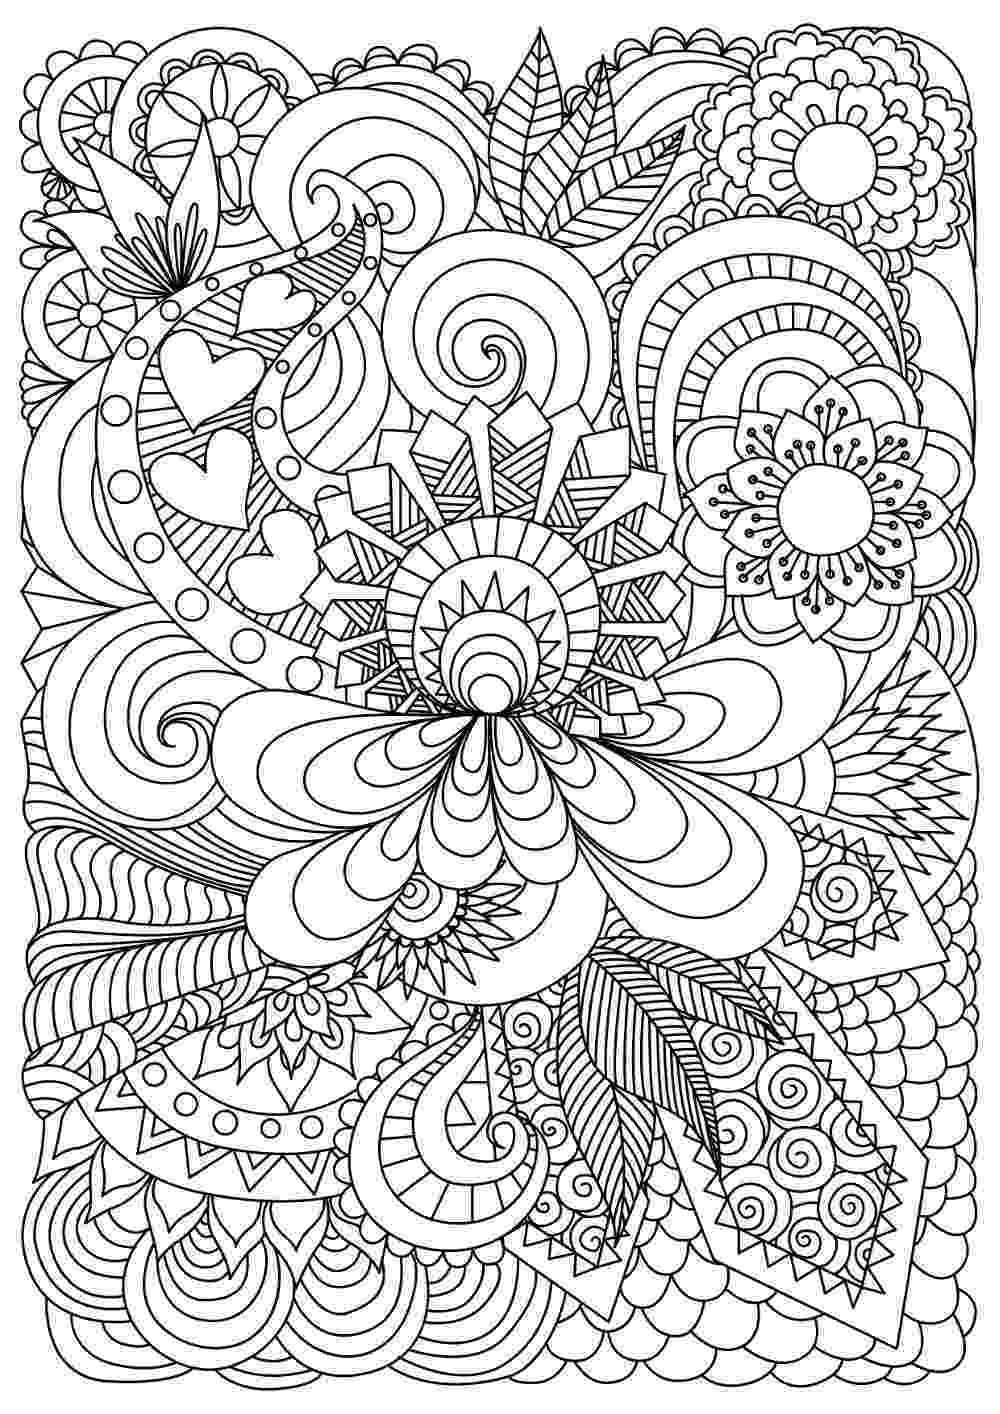 free coloring pages adults online 37 best adults coloring pages updated 2018 coloring pages free online adults